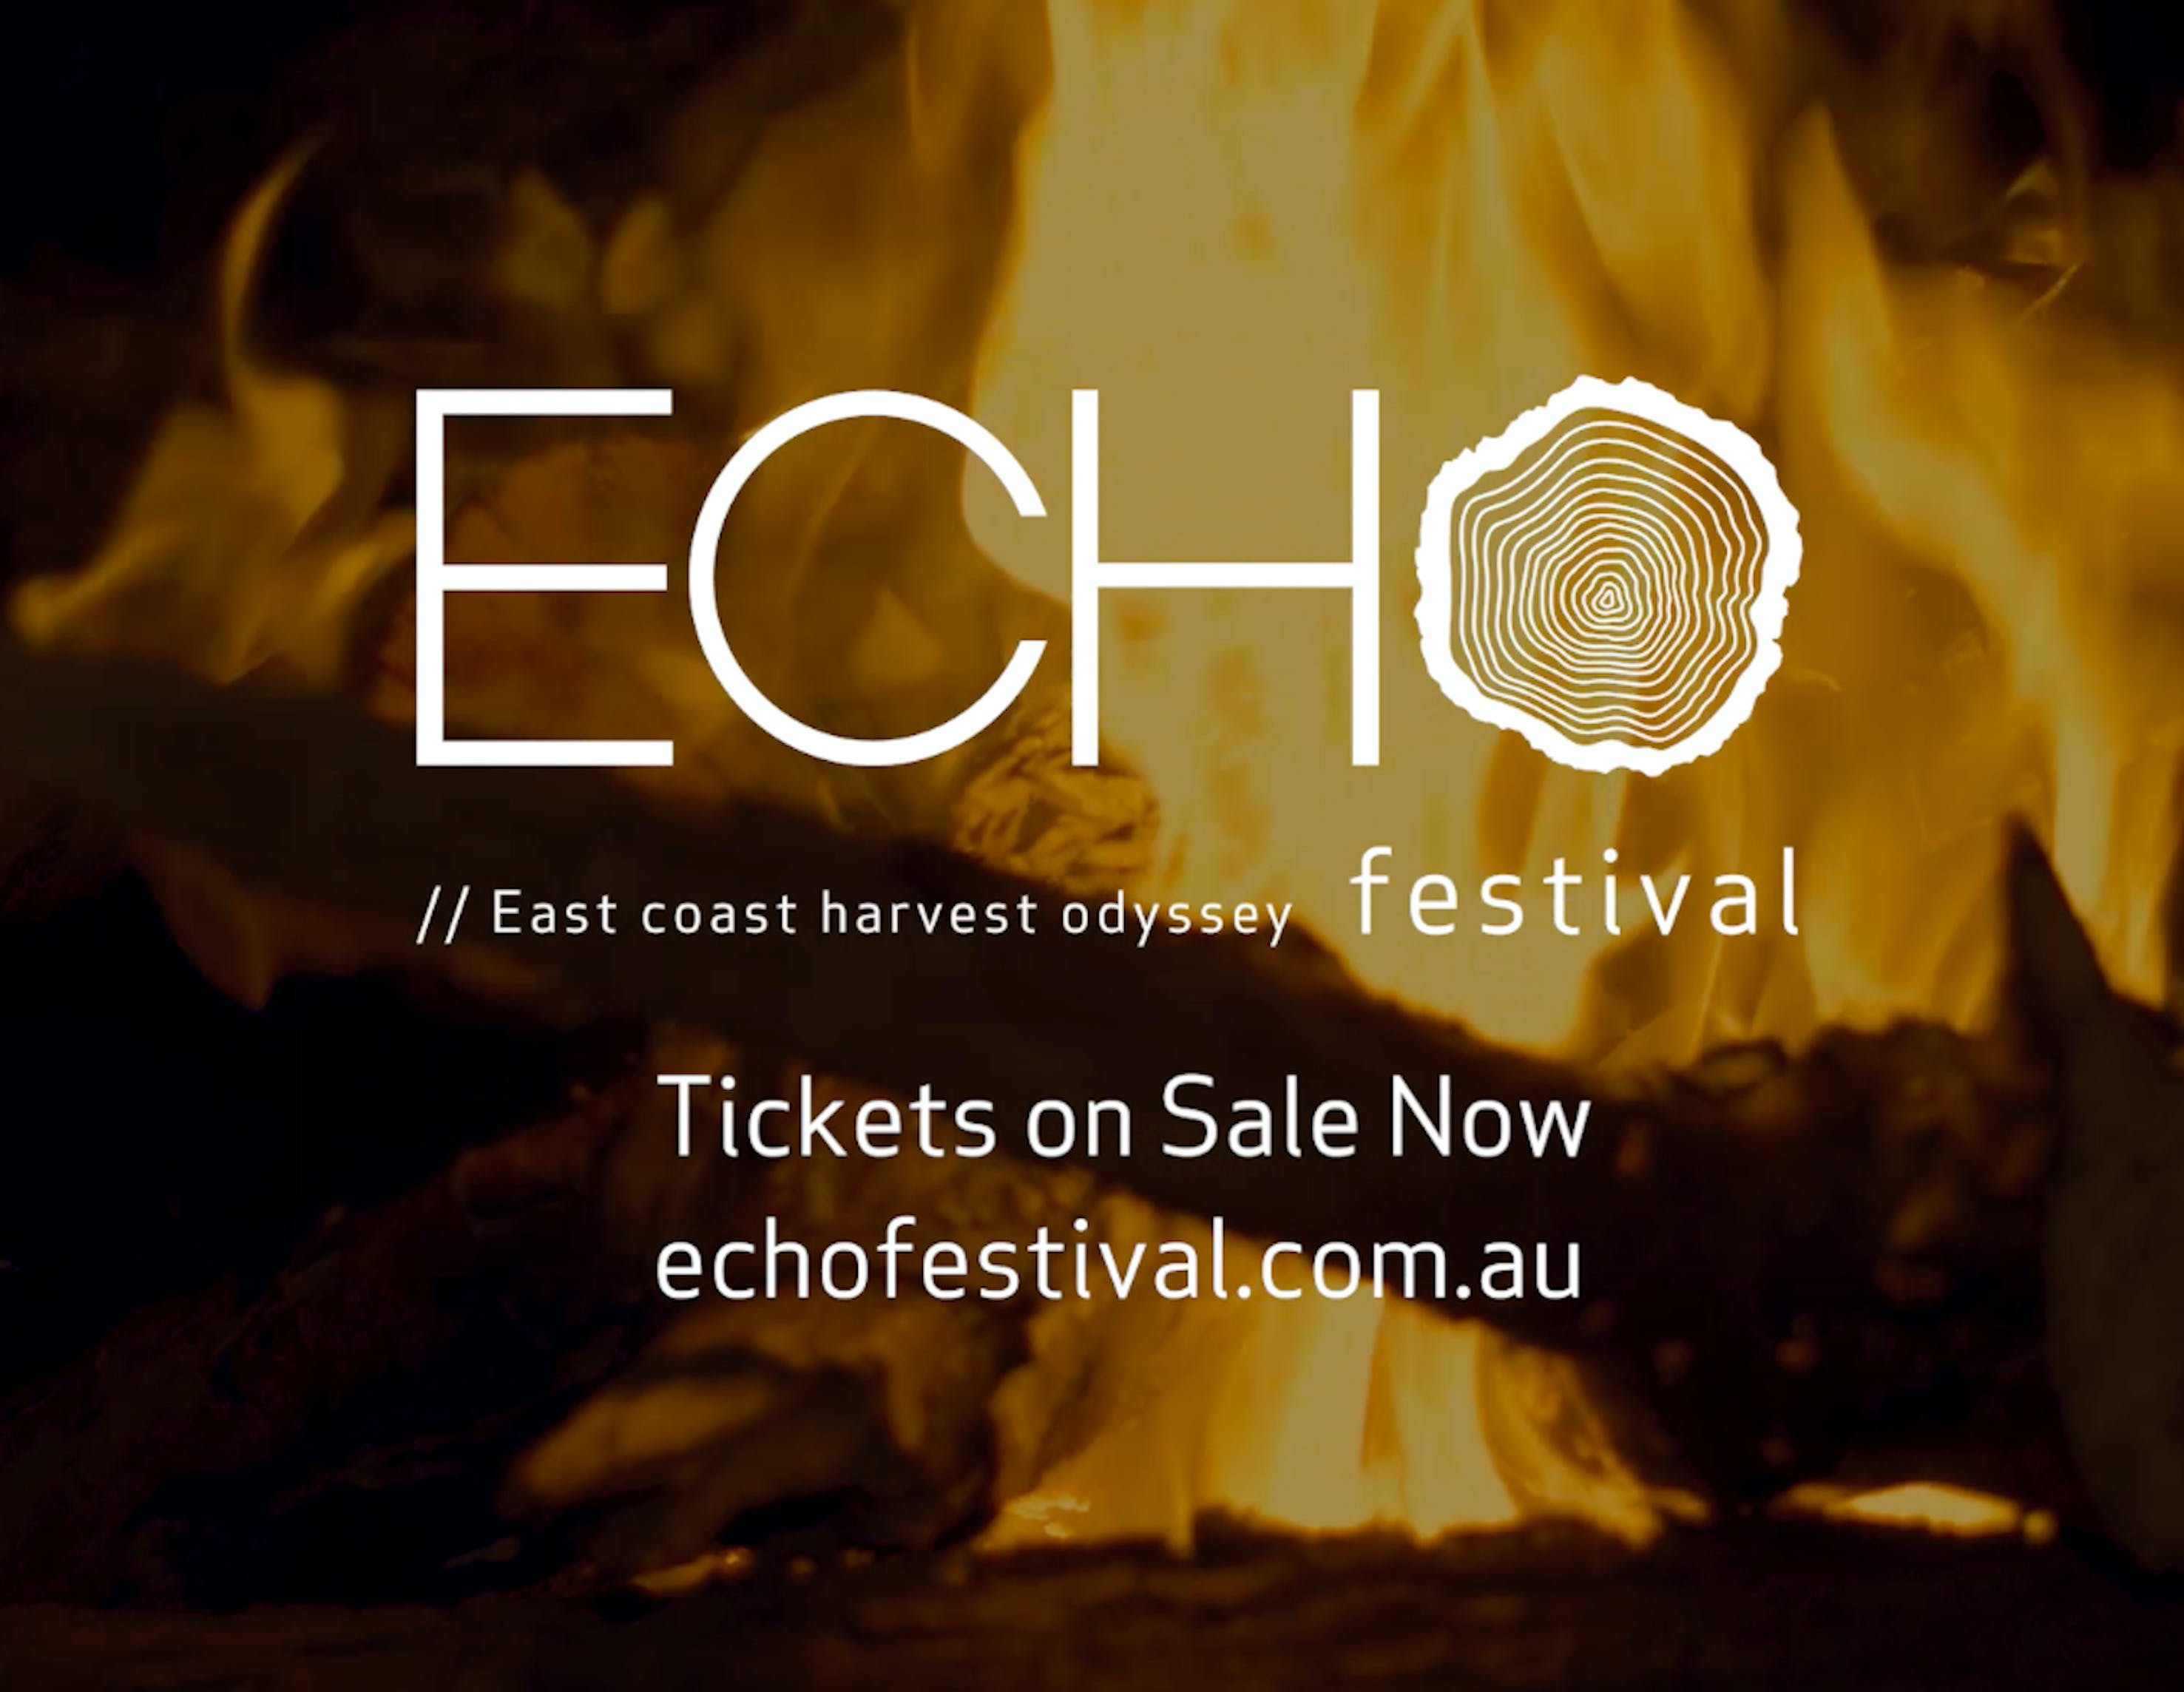 ECHO Festival - East Coast Harvest Odyssey 2021 - New South Wales Tourism